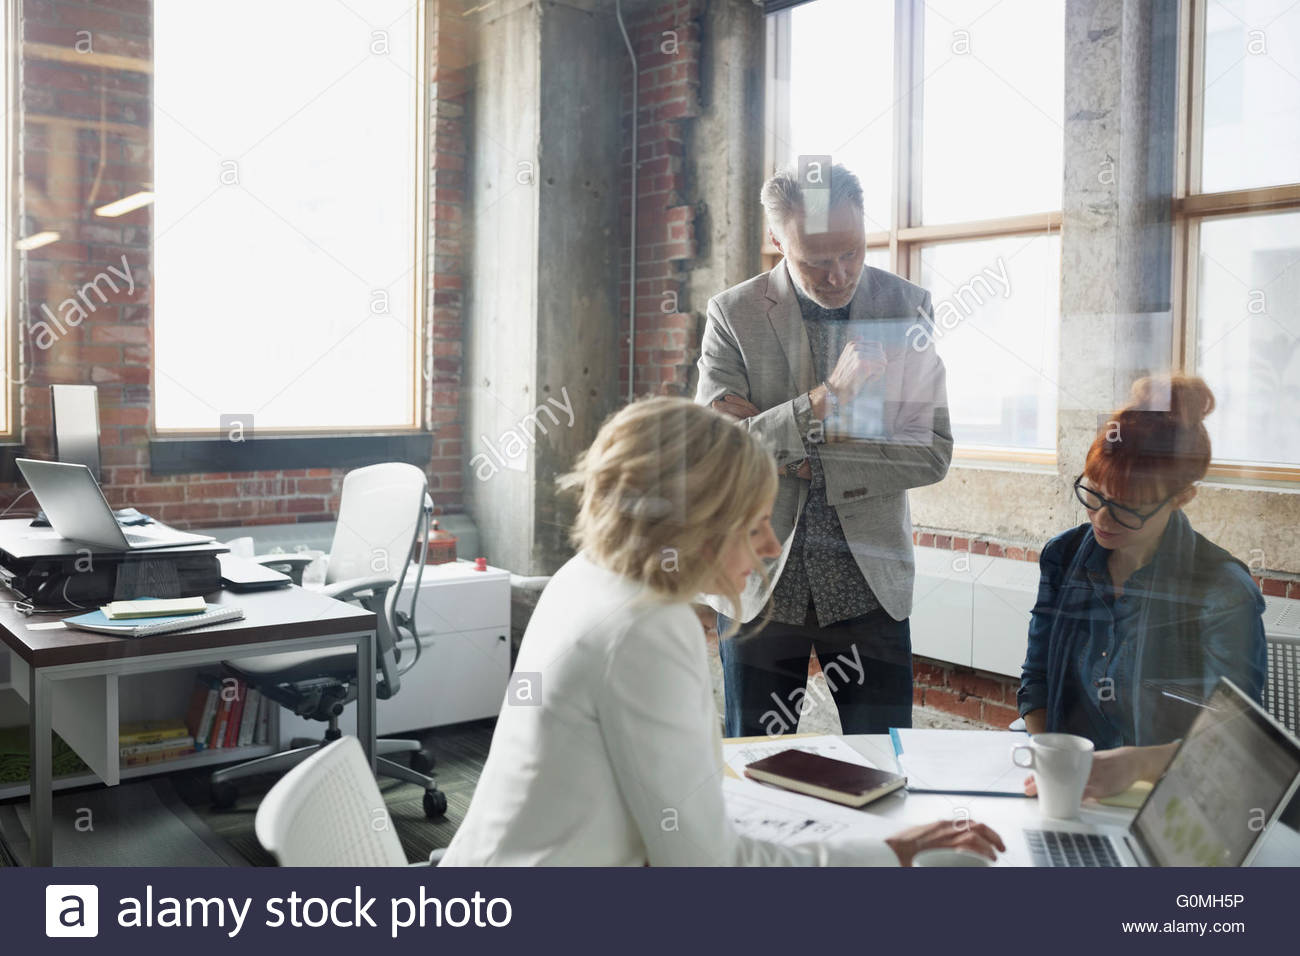 Business people discussing paperwork in meeting - Stock Image